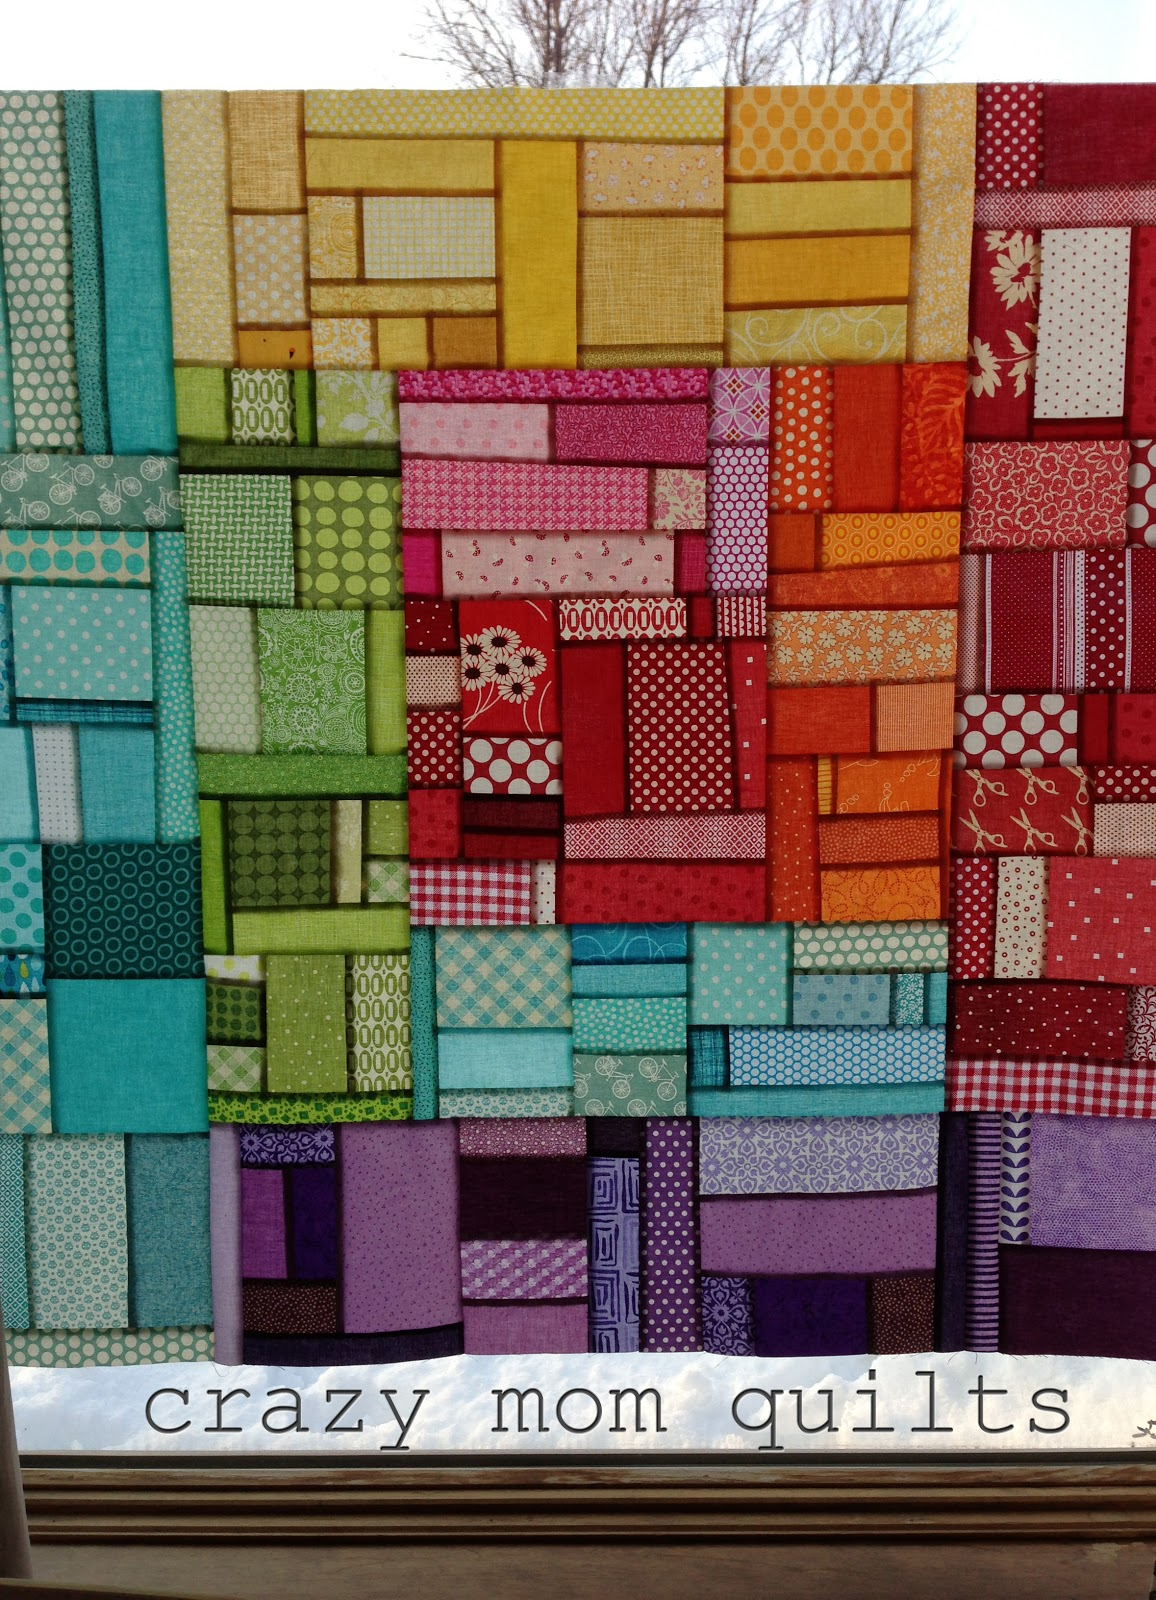 crazy mom quilts: log cabin